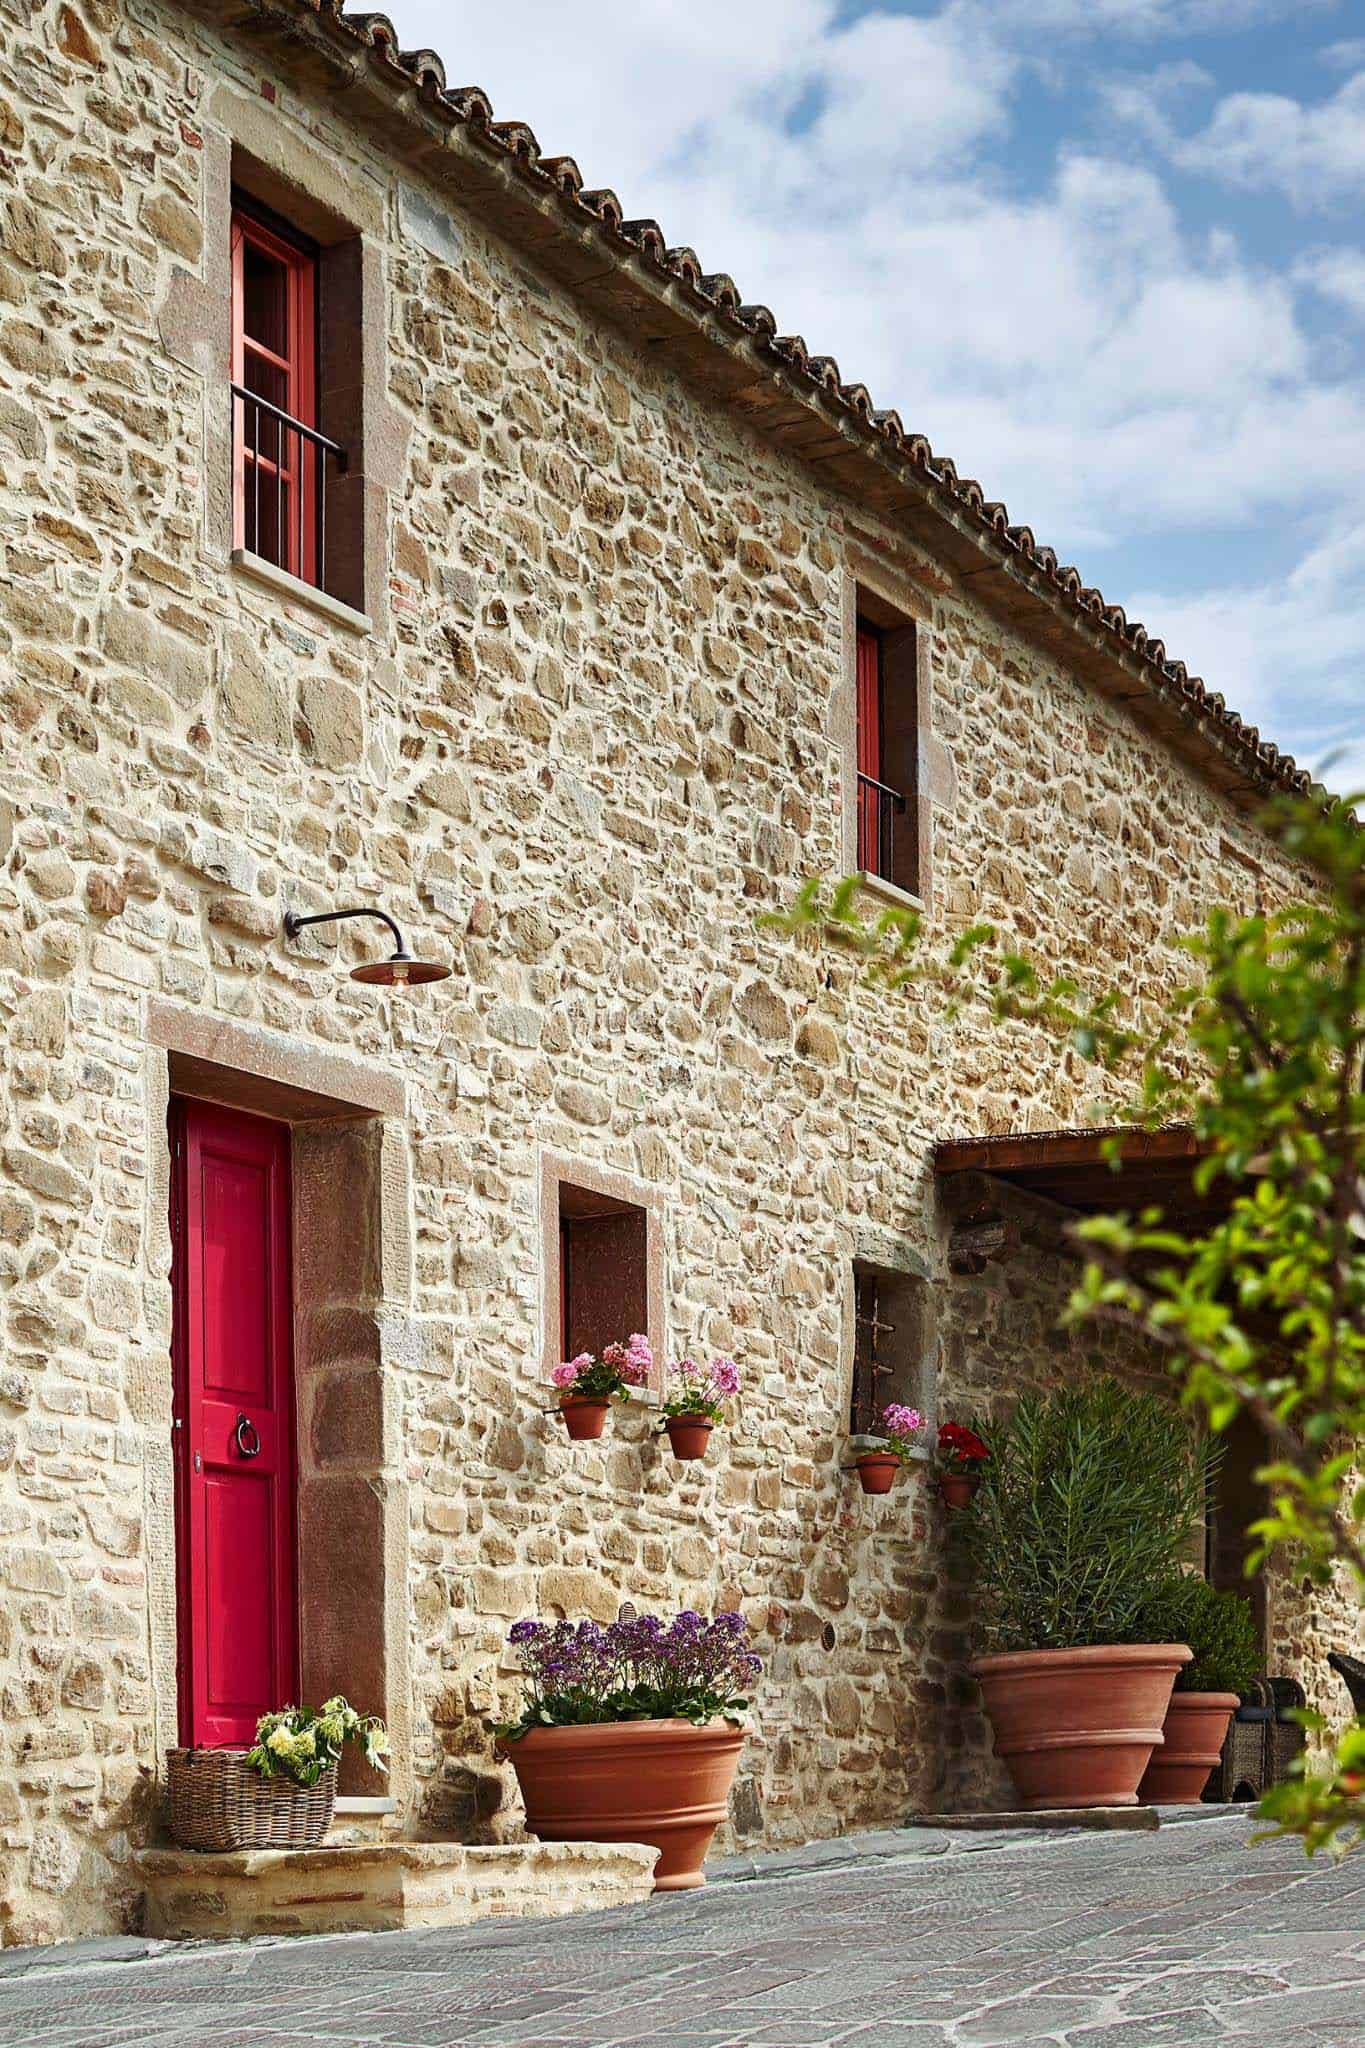 Ventanales Para Exteriores 16th Century Farmhouse Restored Into Charming Holiday